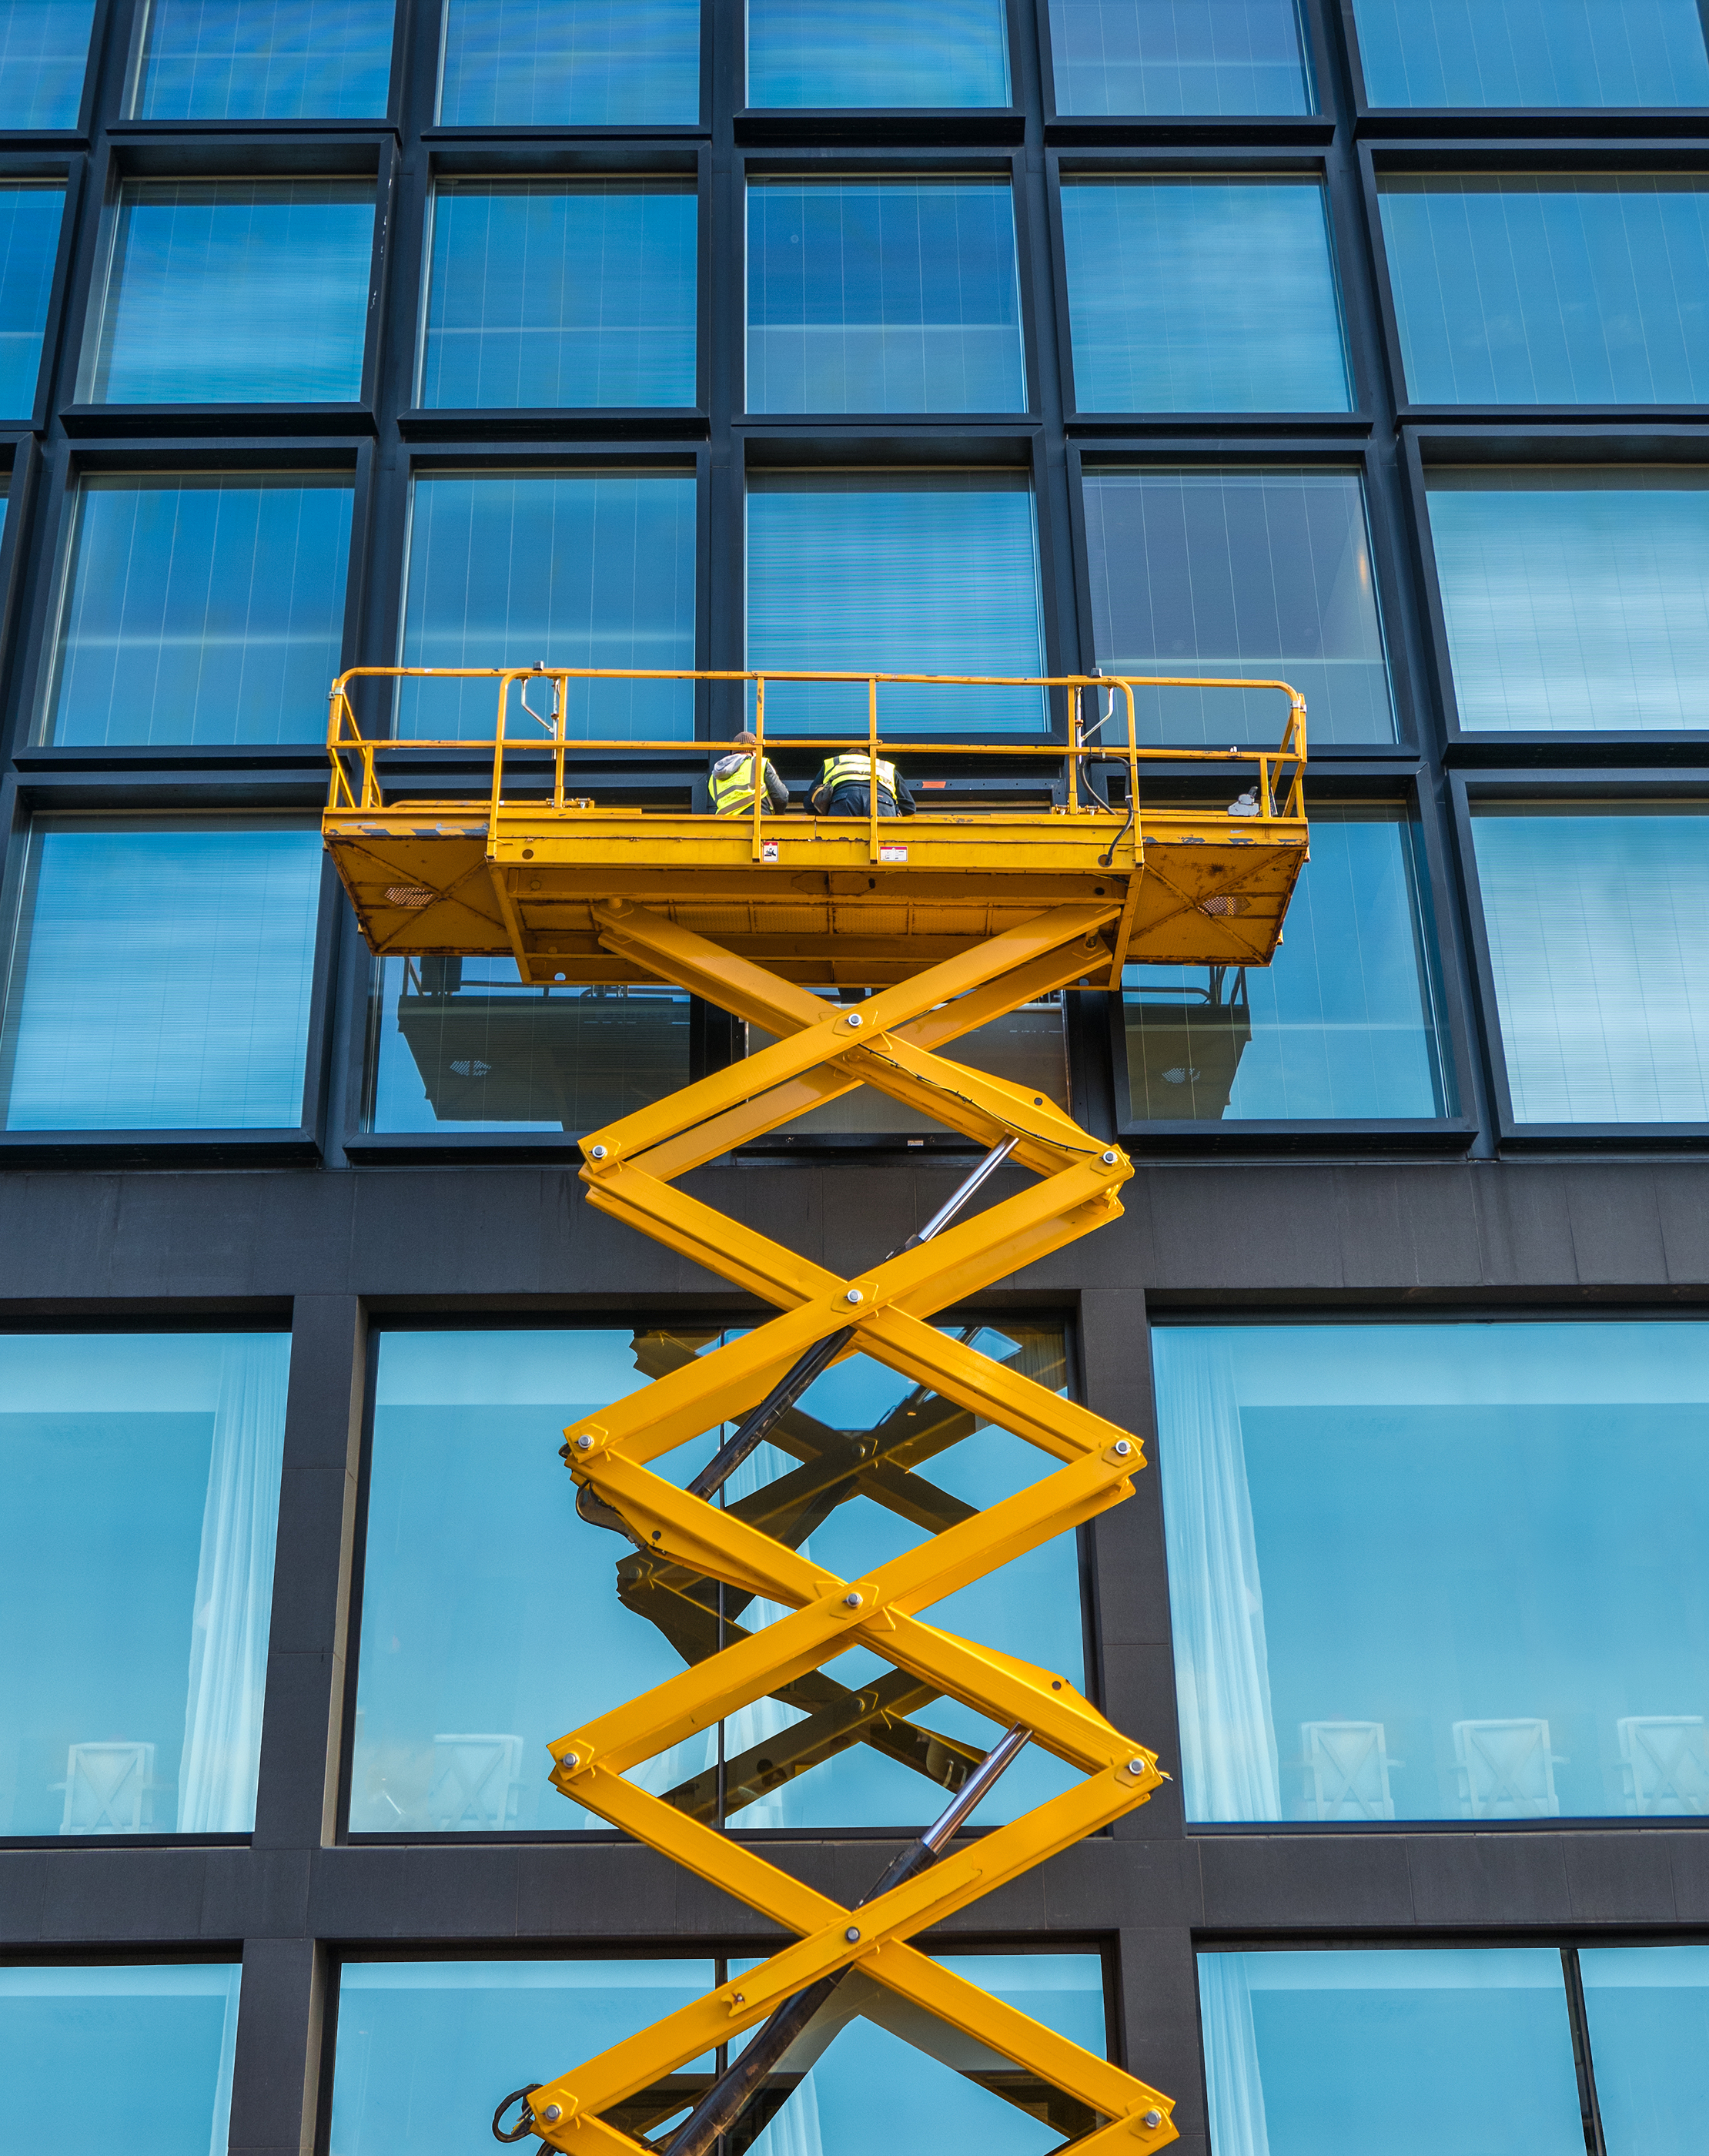 learn how to operate a lift and move a scissor lift